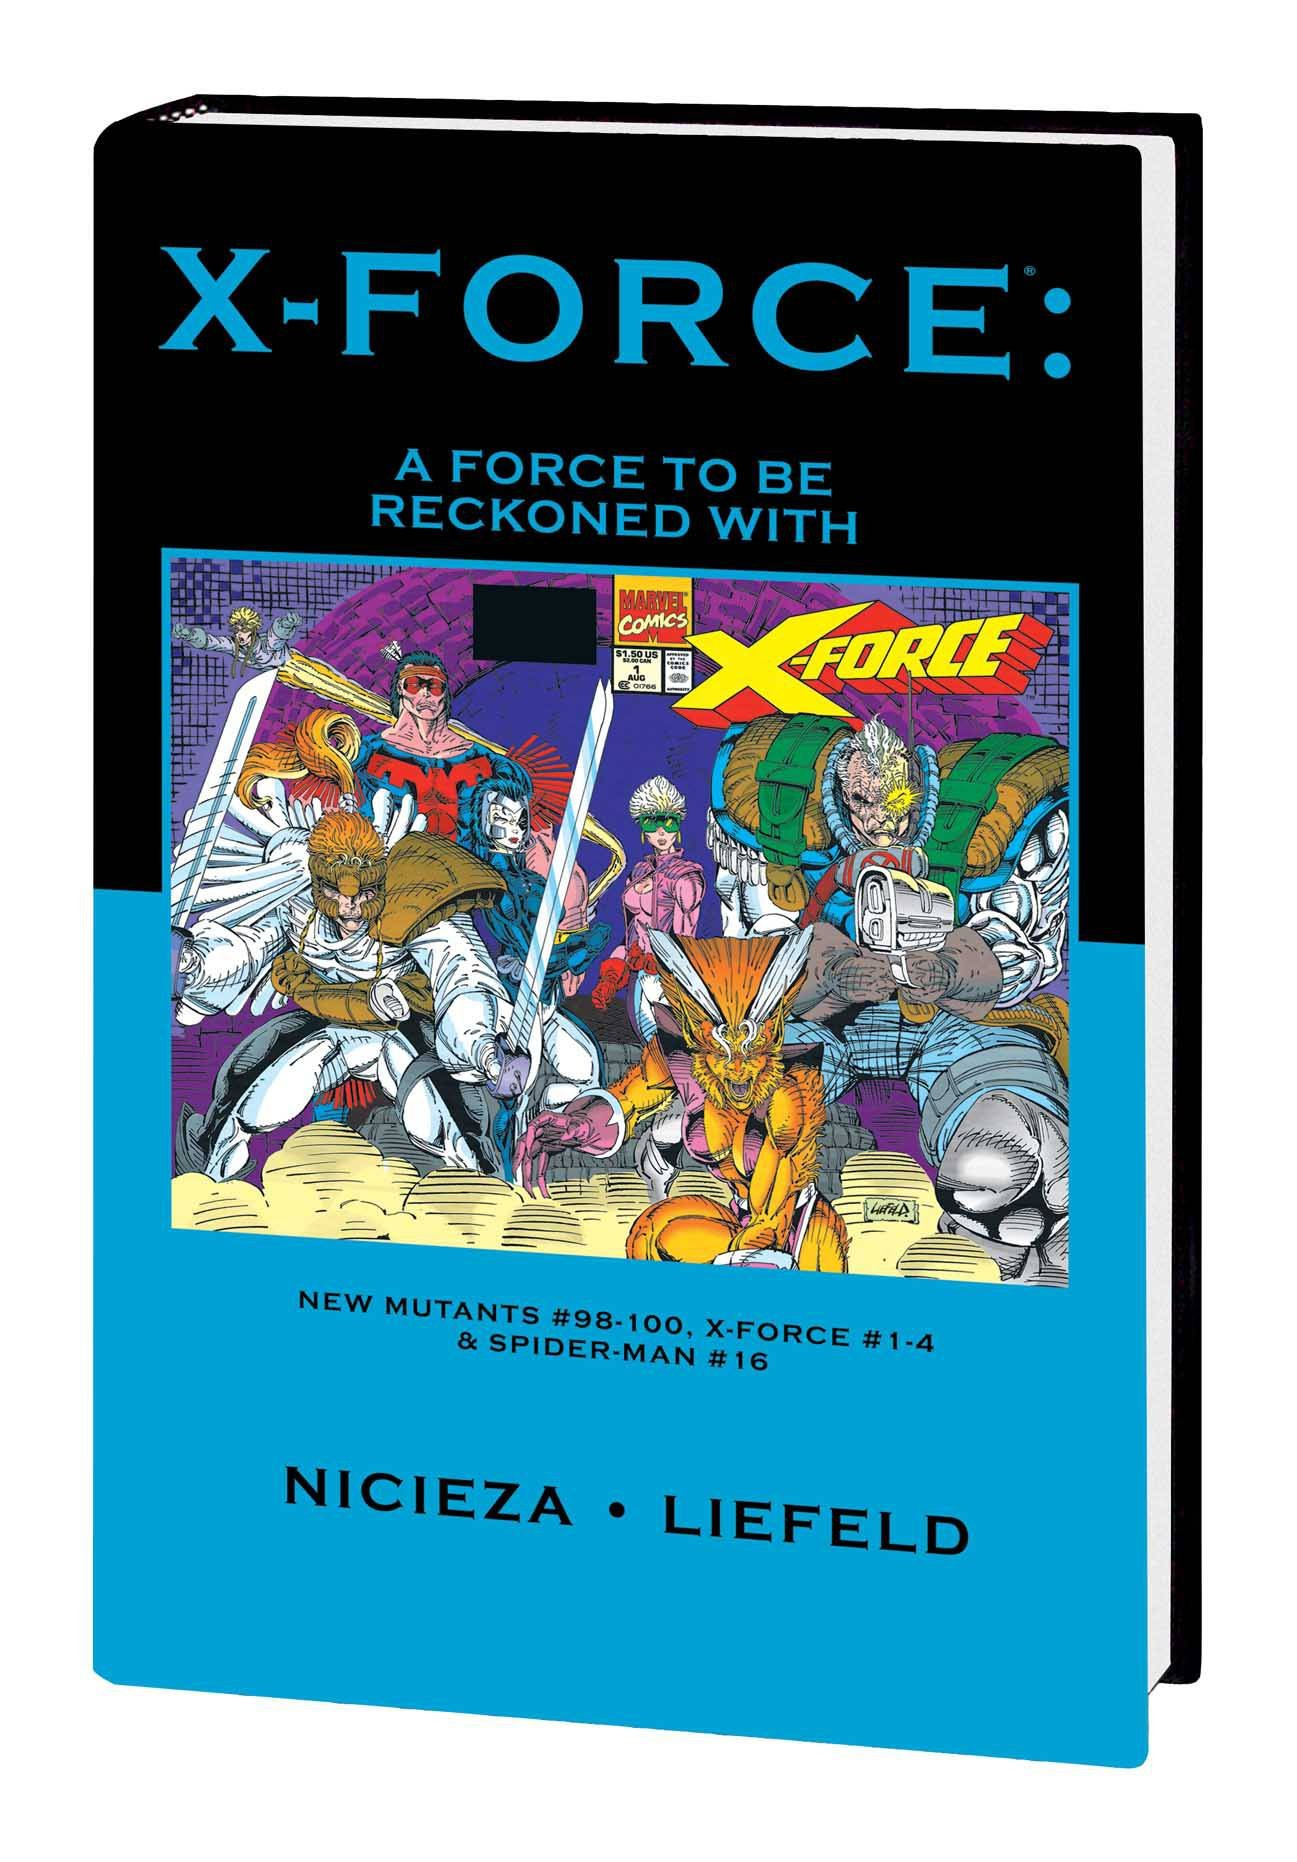 Read Online X-FORCE PREM HC FORCE TO BE RECKONED WITH DM VAR ED (X-FORCE, PREM HC FORCE TO BE RECKONED WITH DM VAR ED) PDF